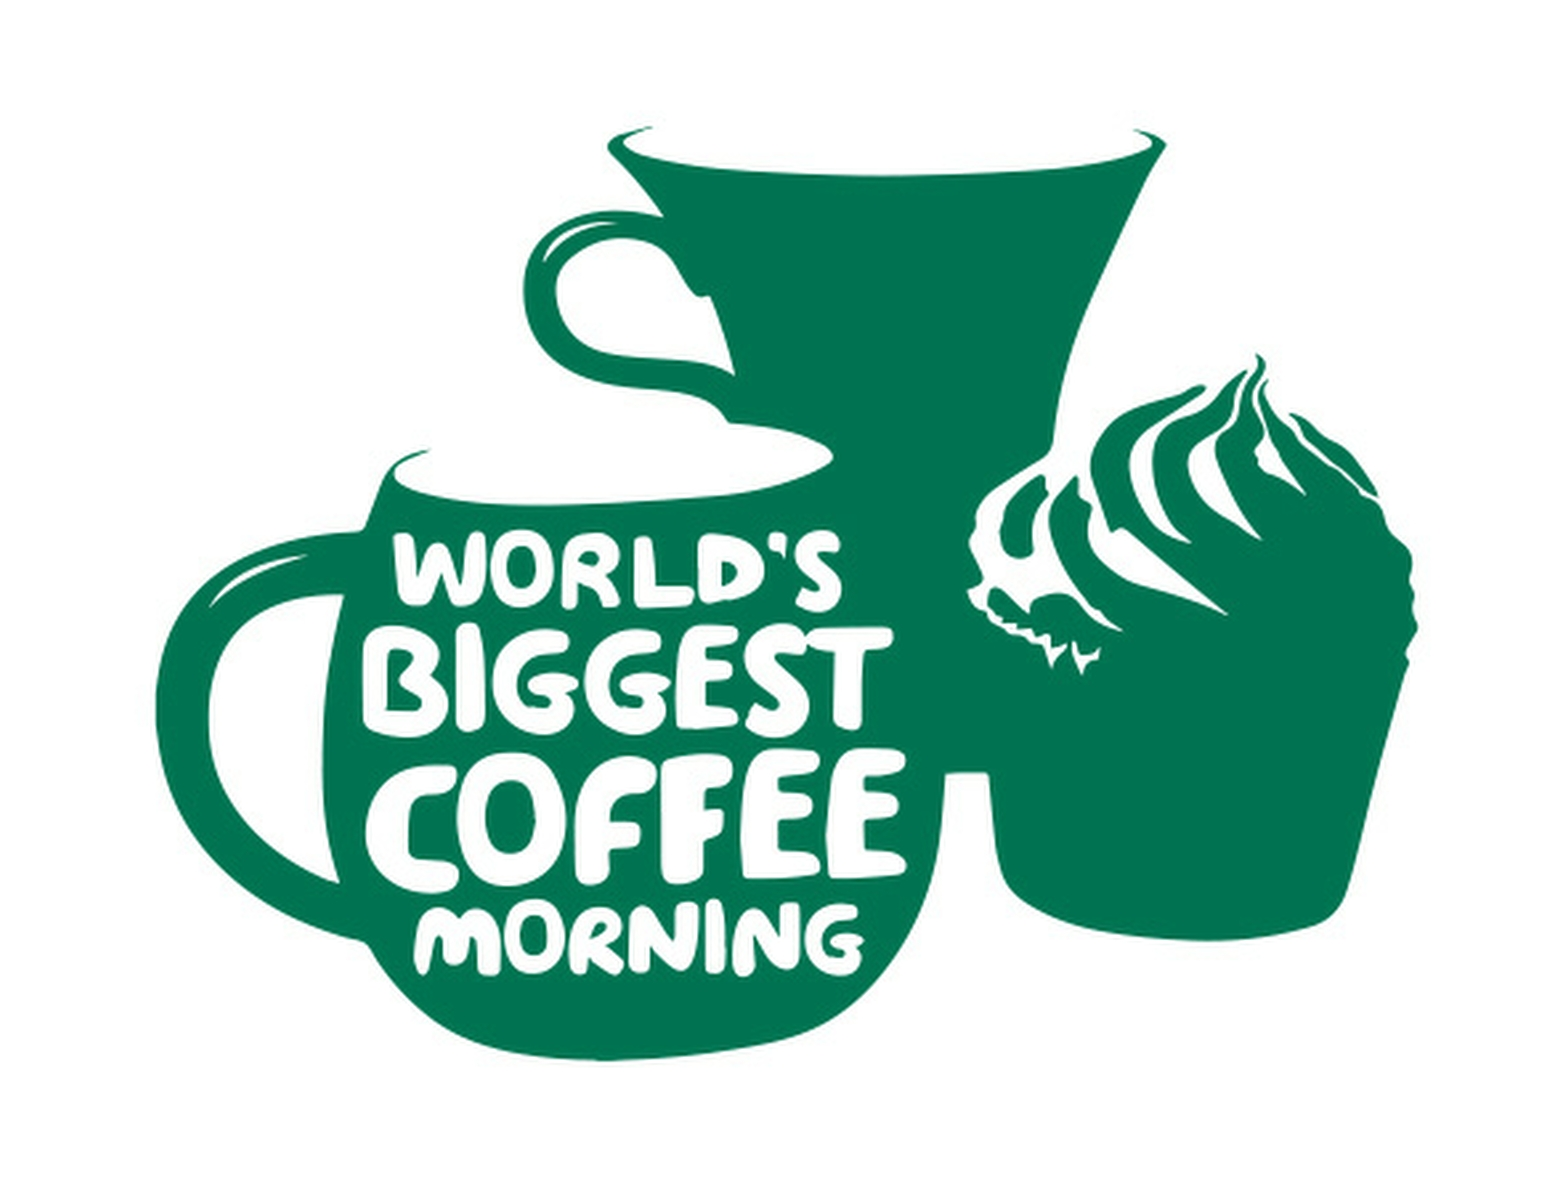 Support your local Macmillan Coffee Morning